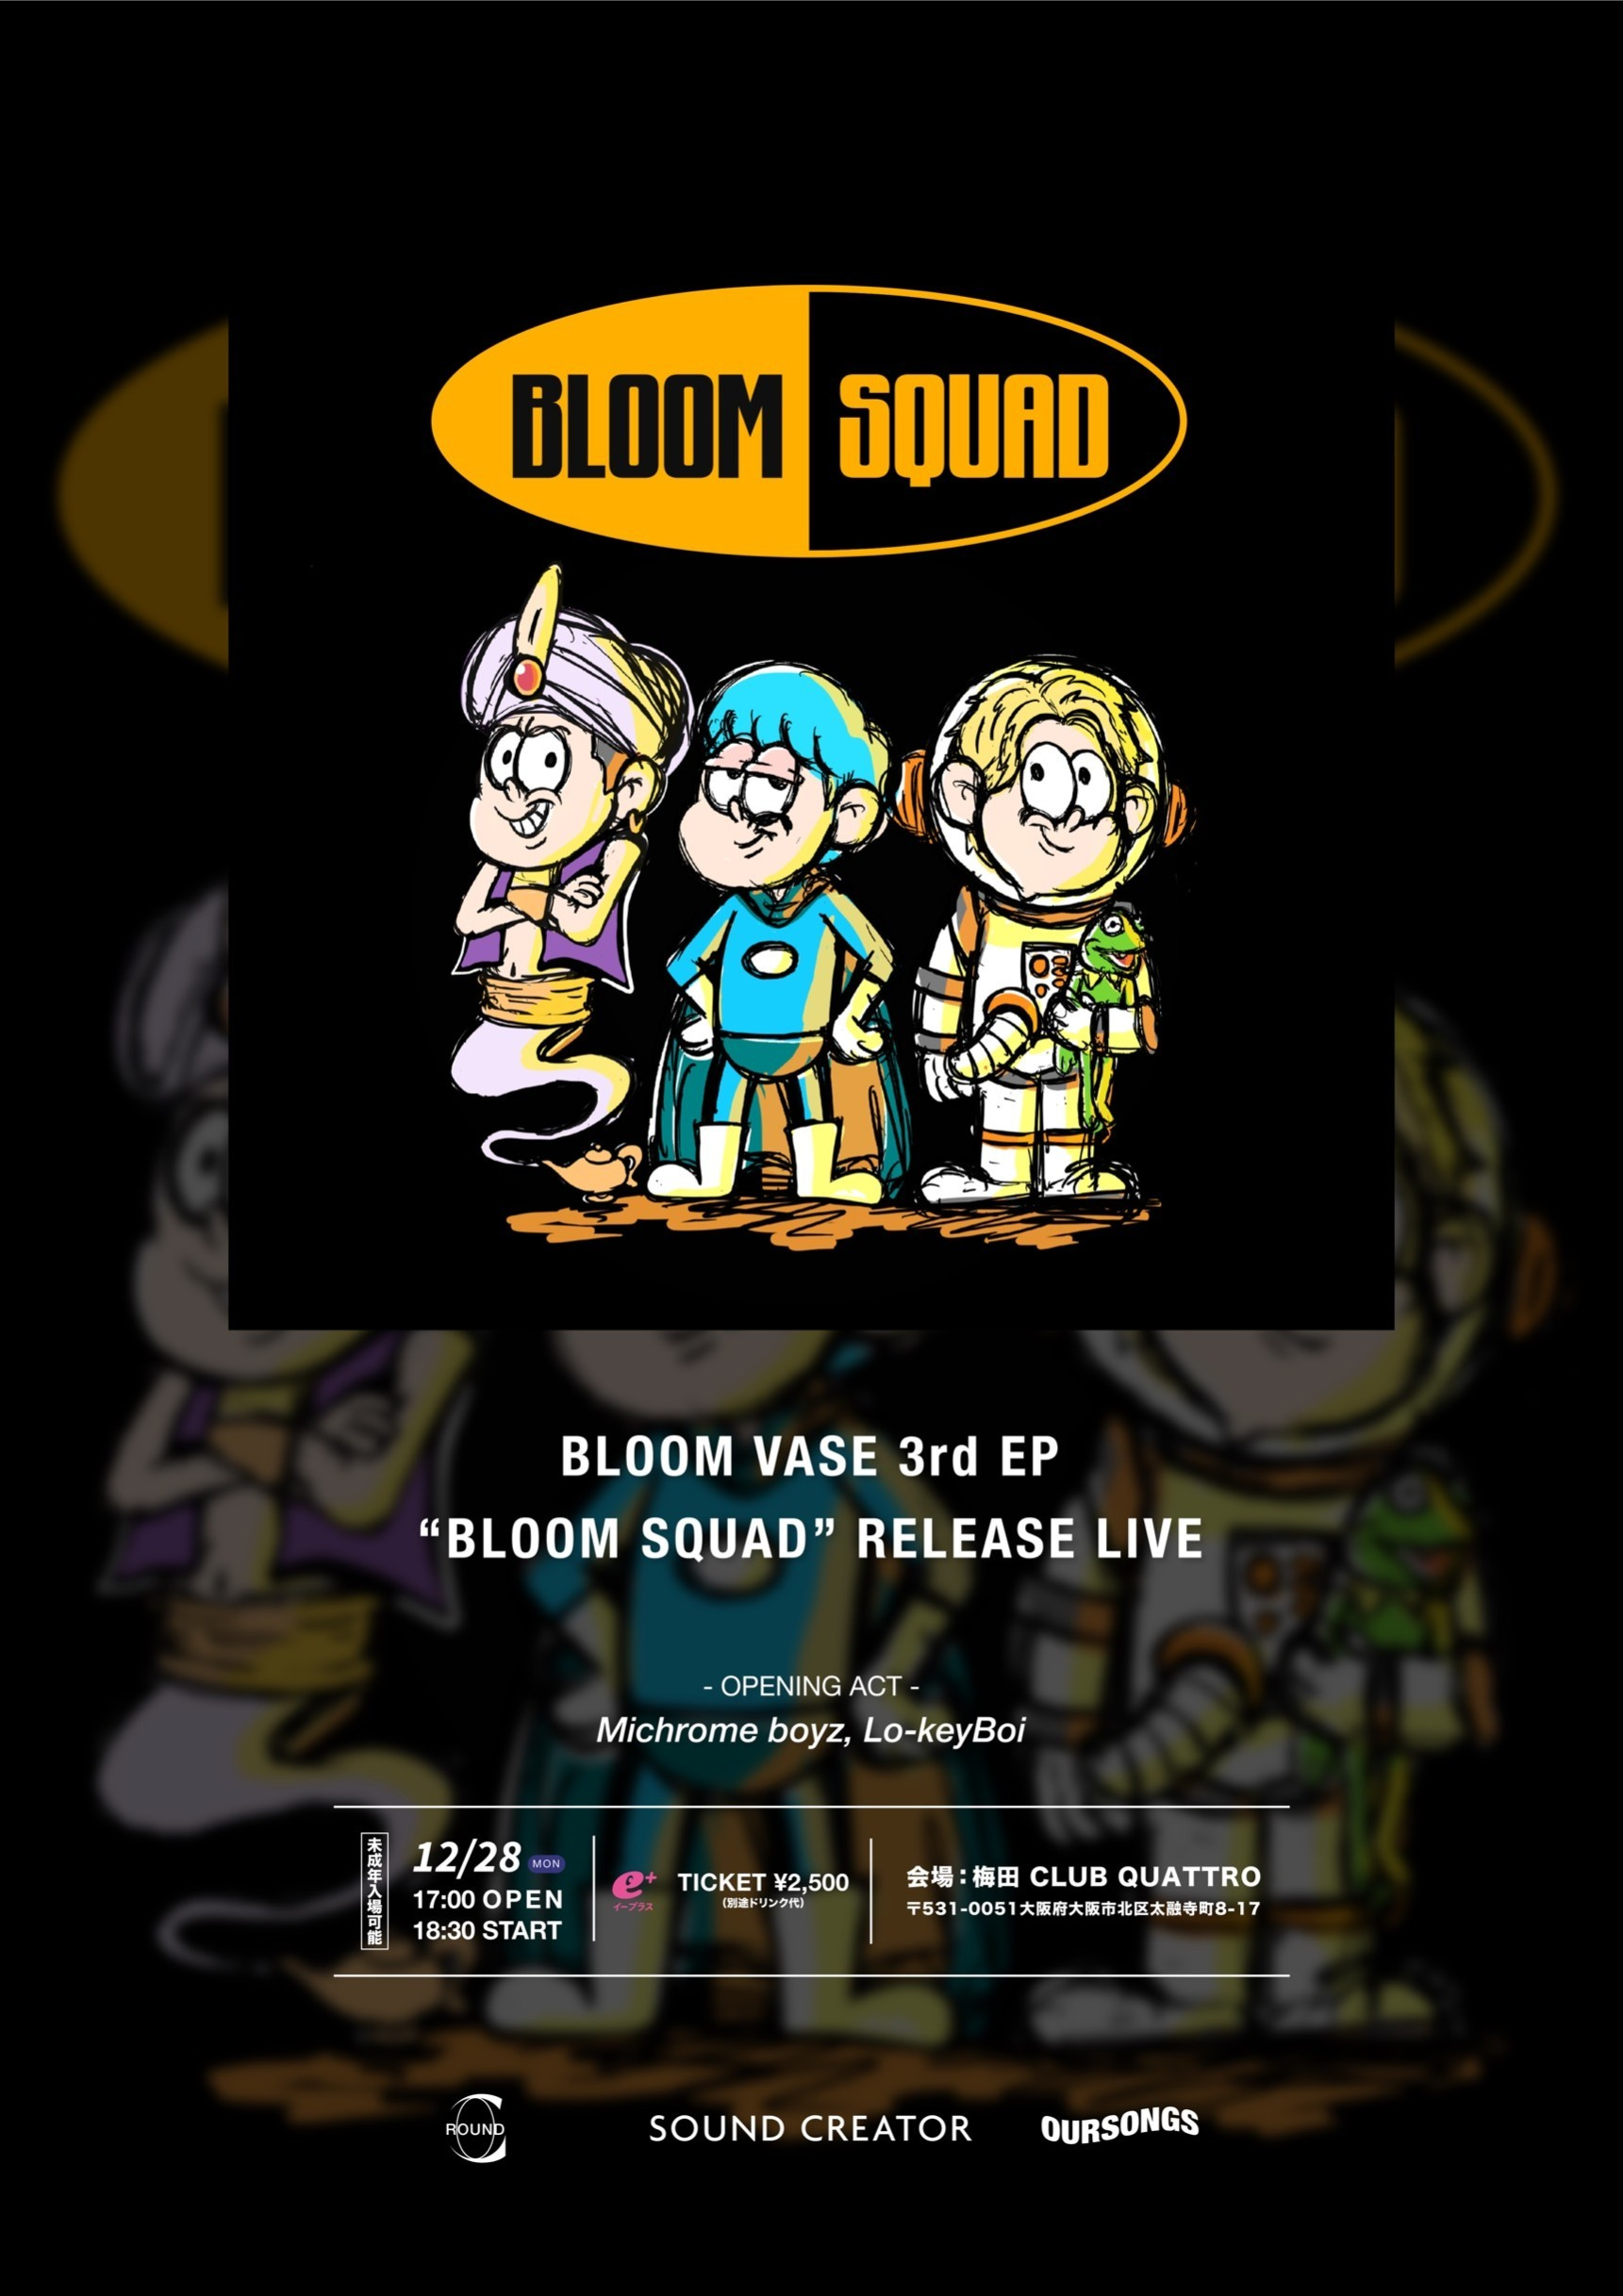 BLOOM SQUAD